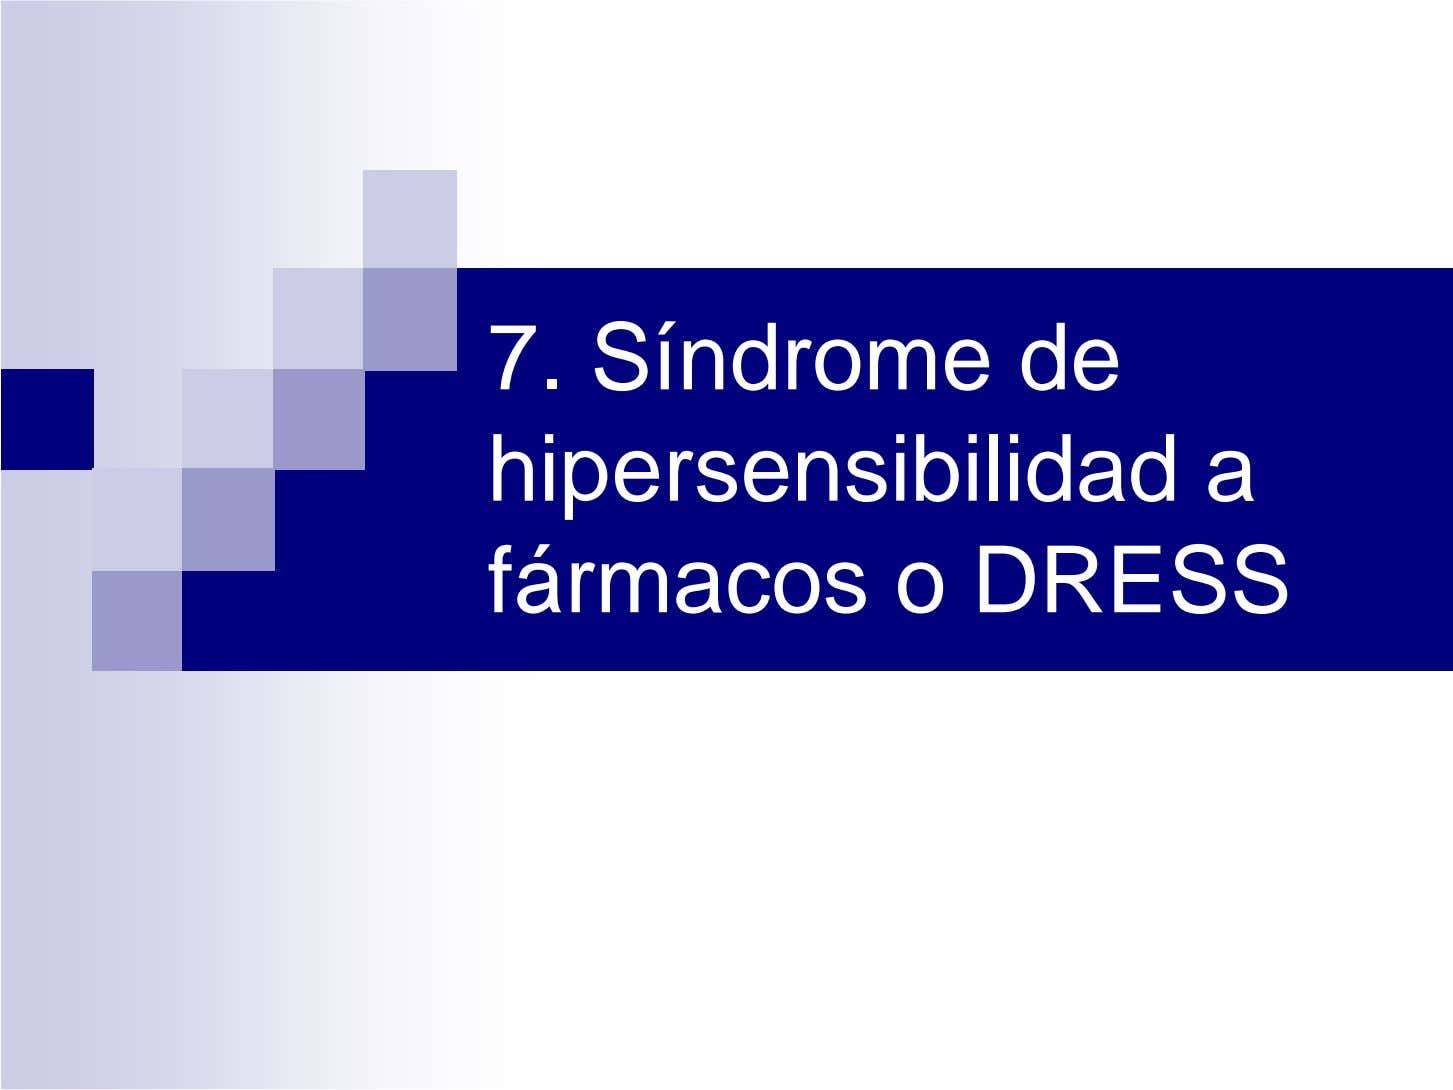 7. Síndrome de hipersensibilidad a fármacos o DRESS